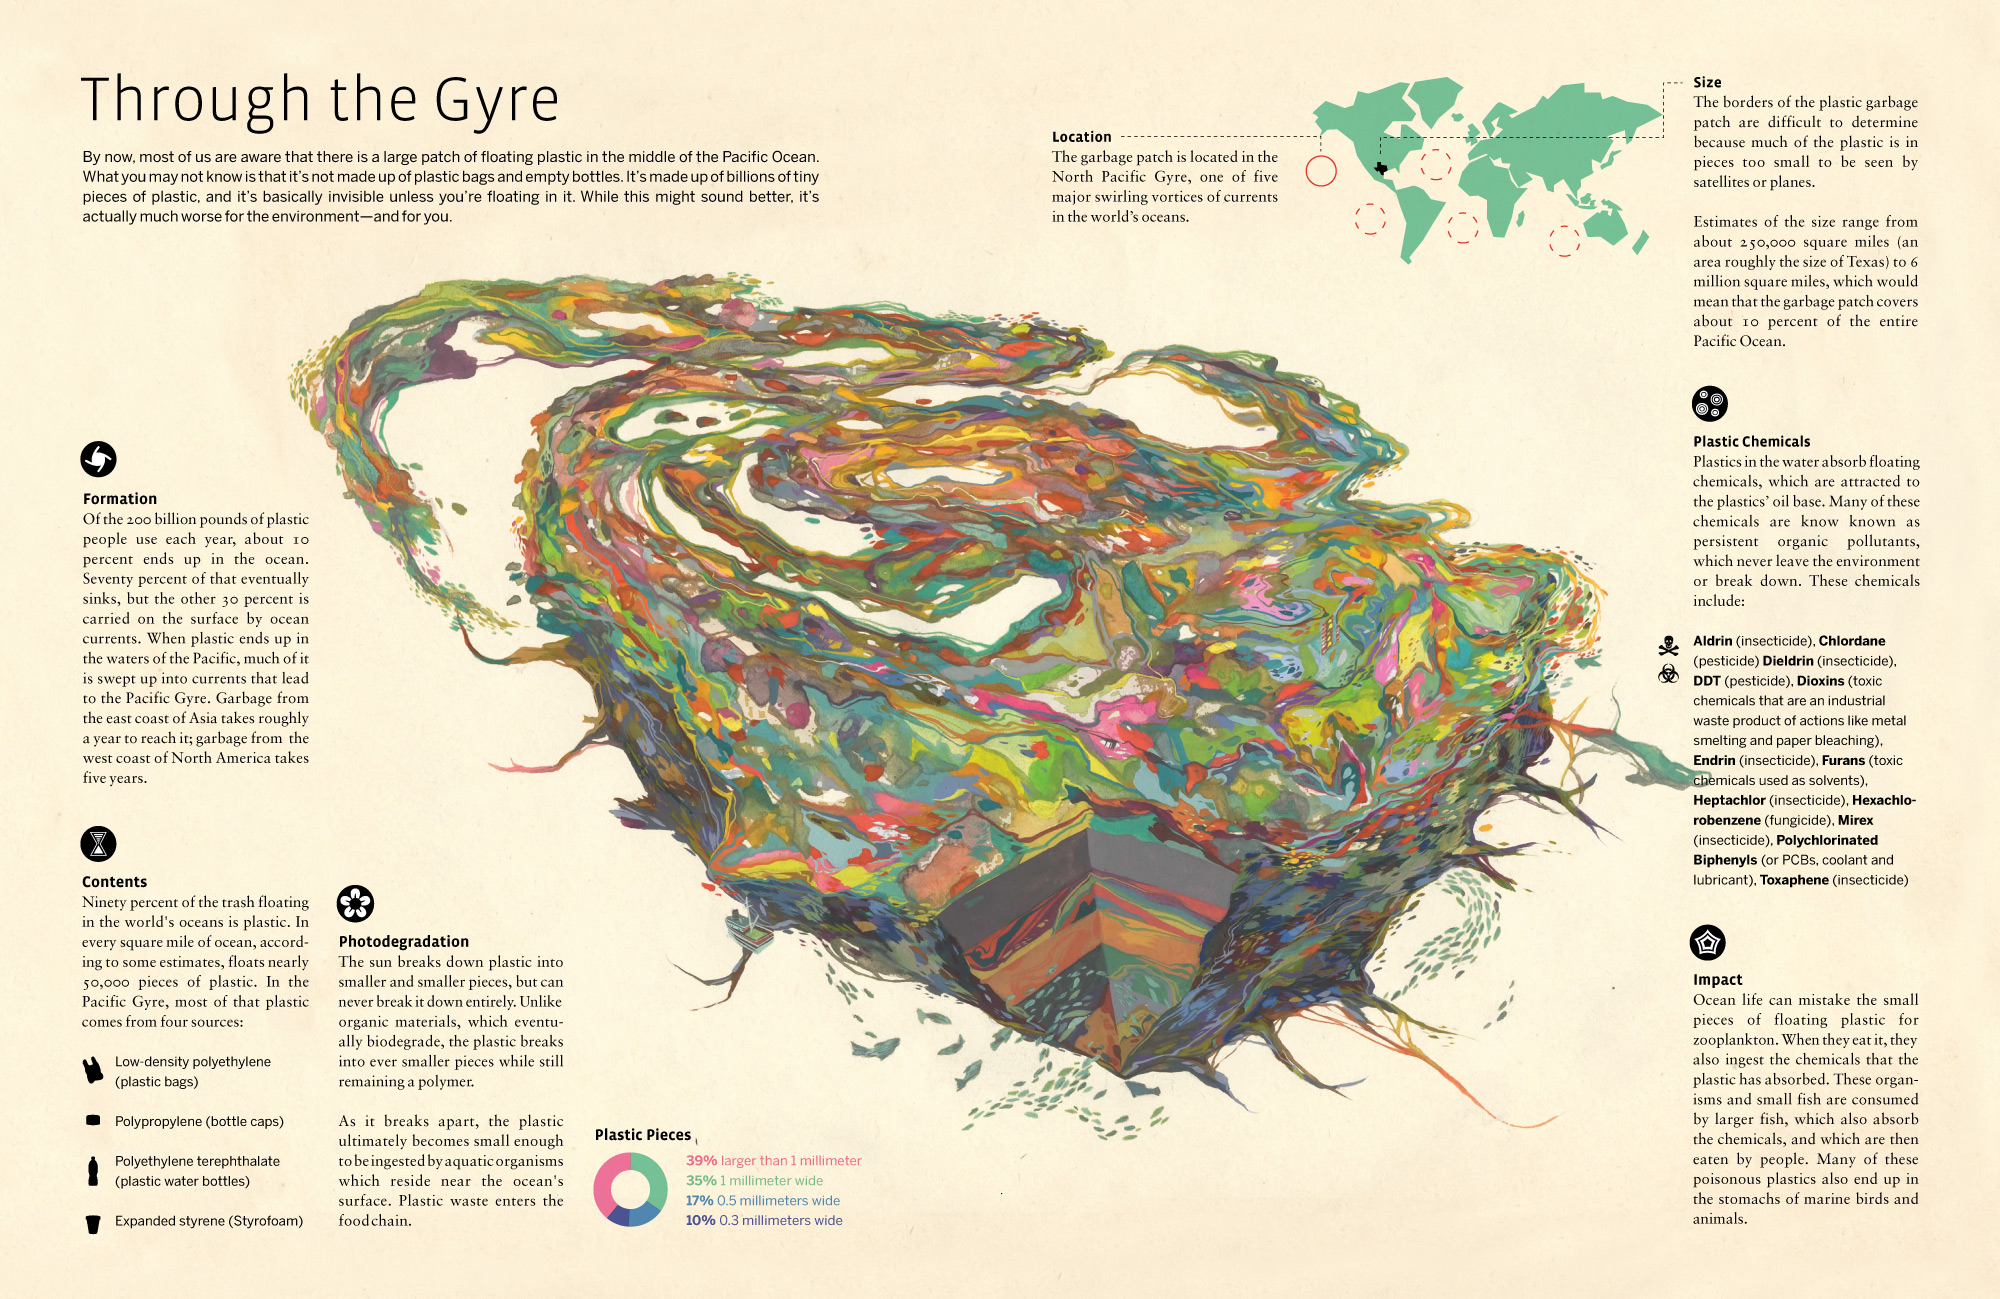 A visual definition of a Gyre